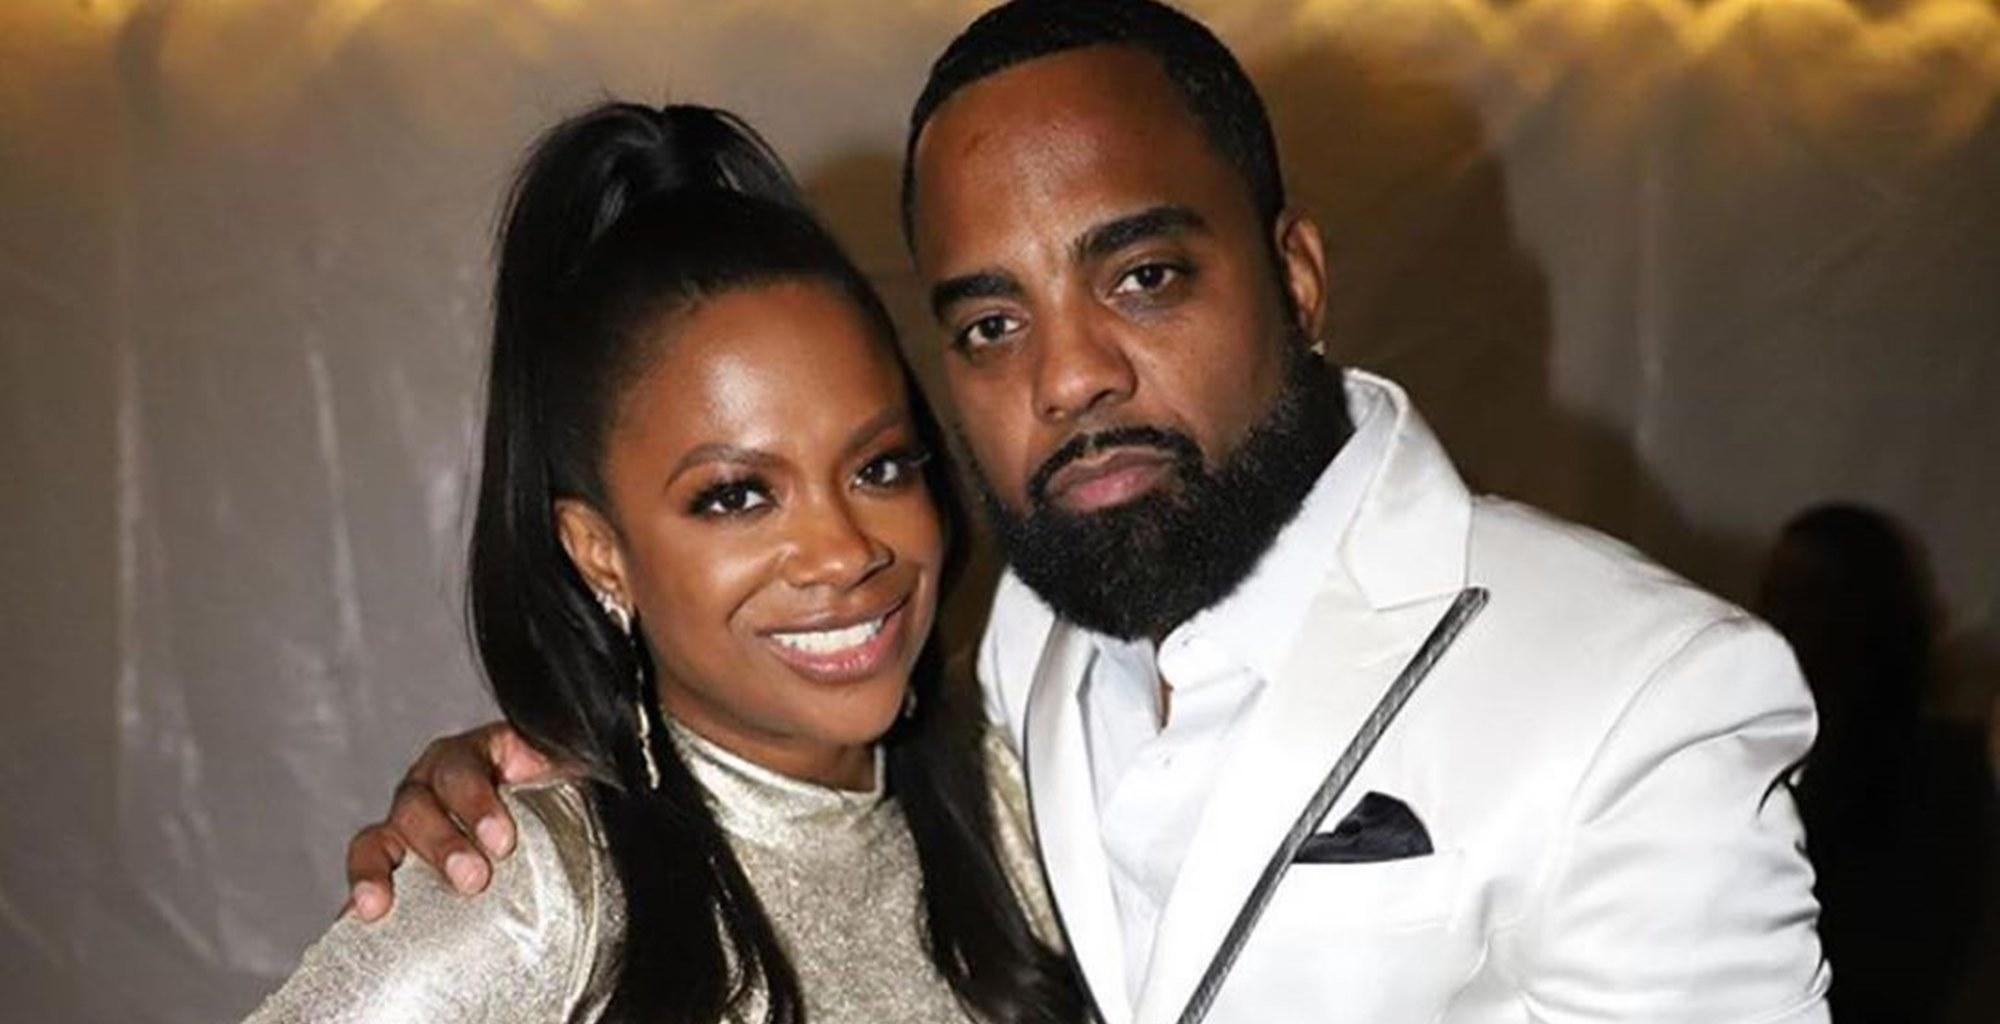 Kandi Burruss Tells The Whole Truth About Husband Todd Tucker Using Her Money For His Lavish Lifestyle And Businesses In New Video